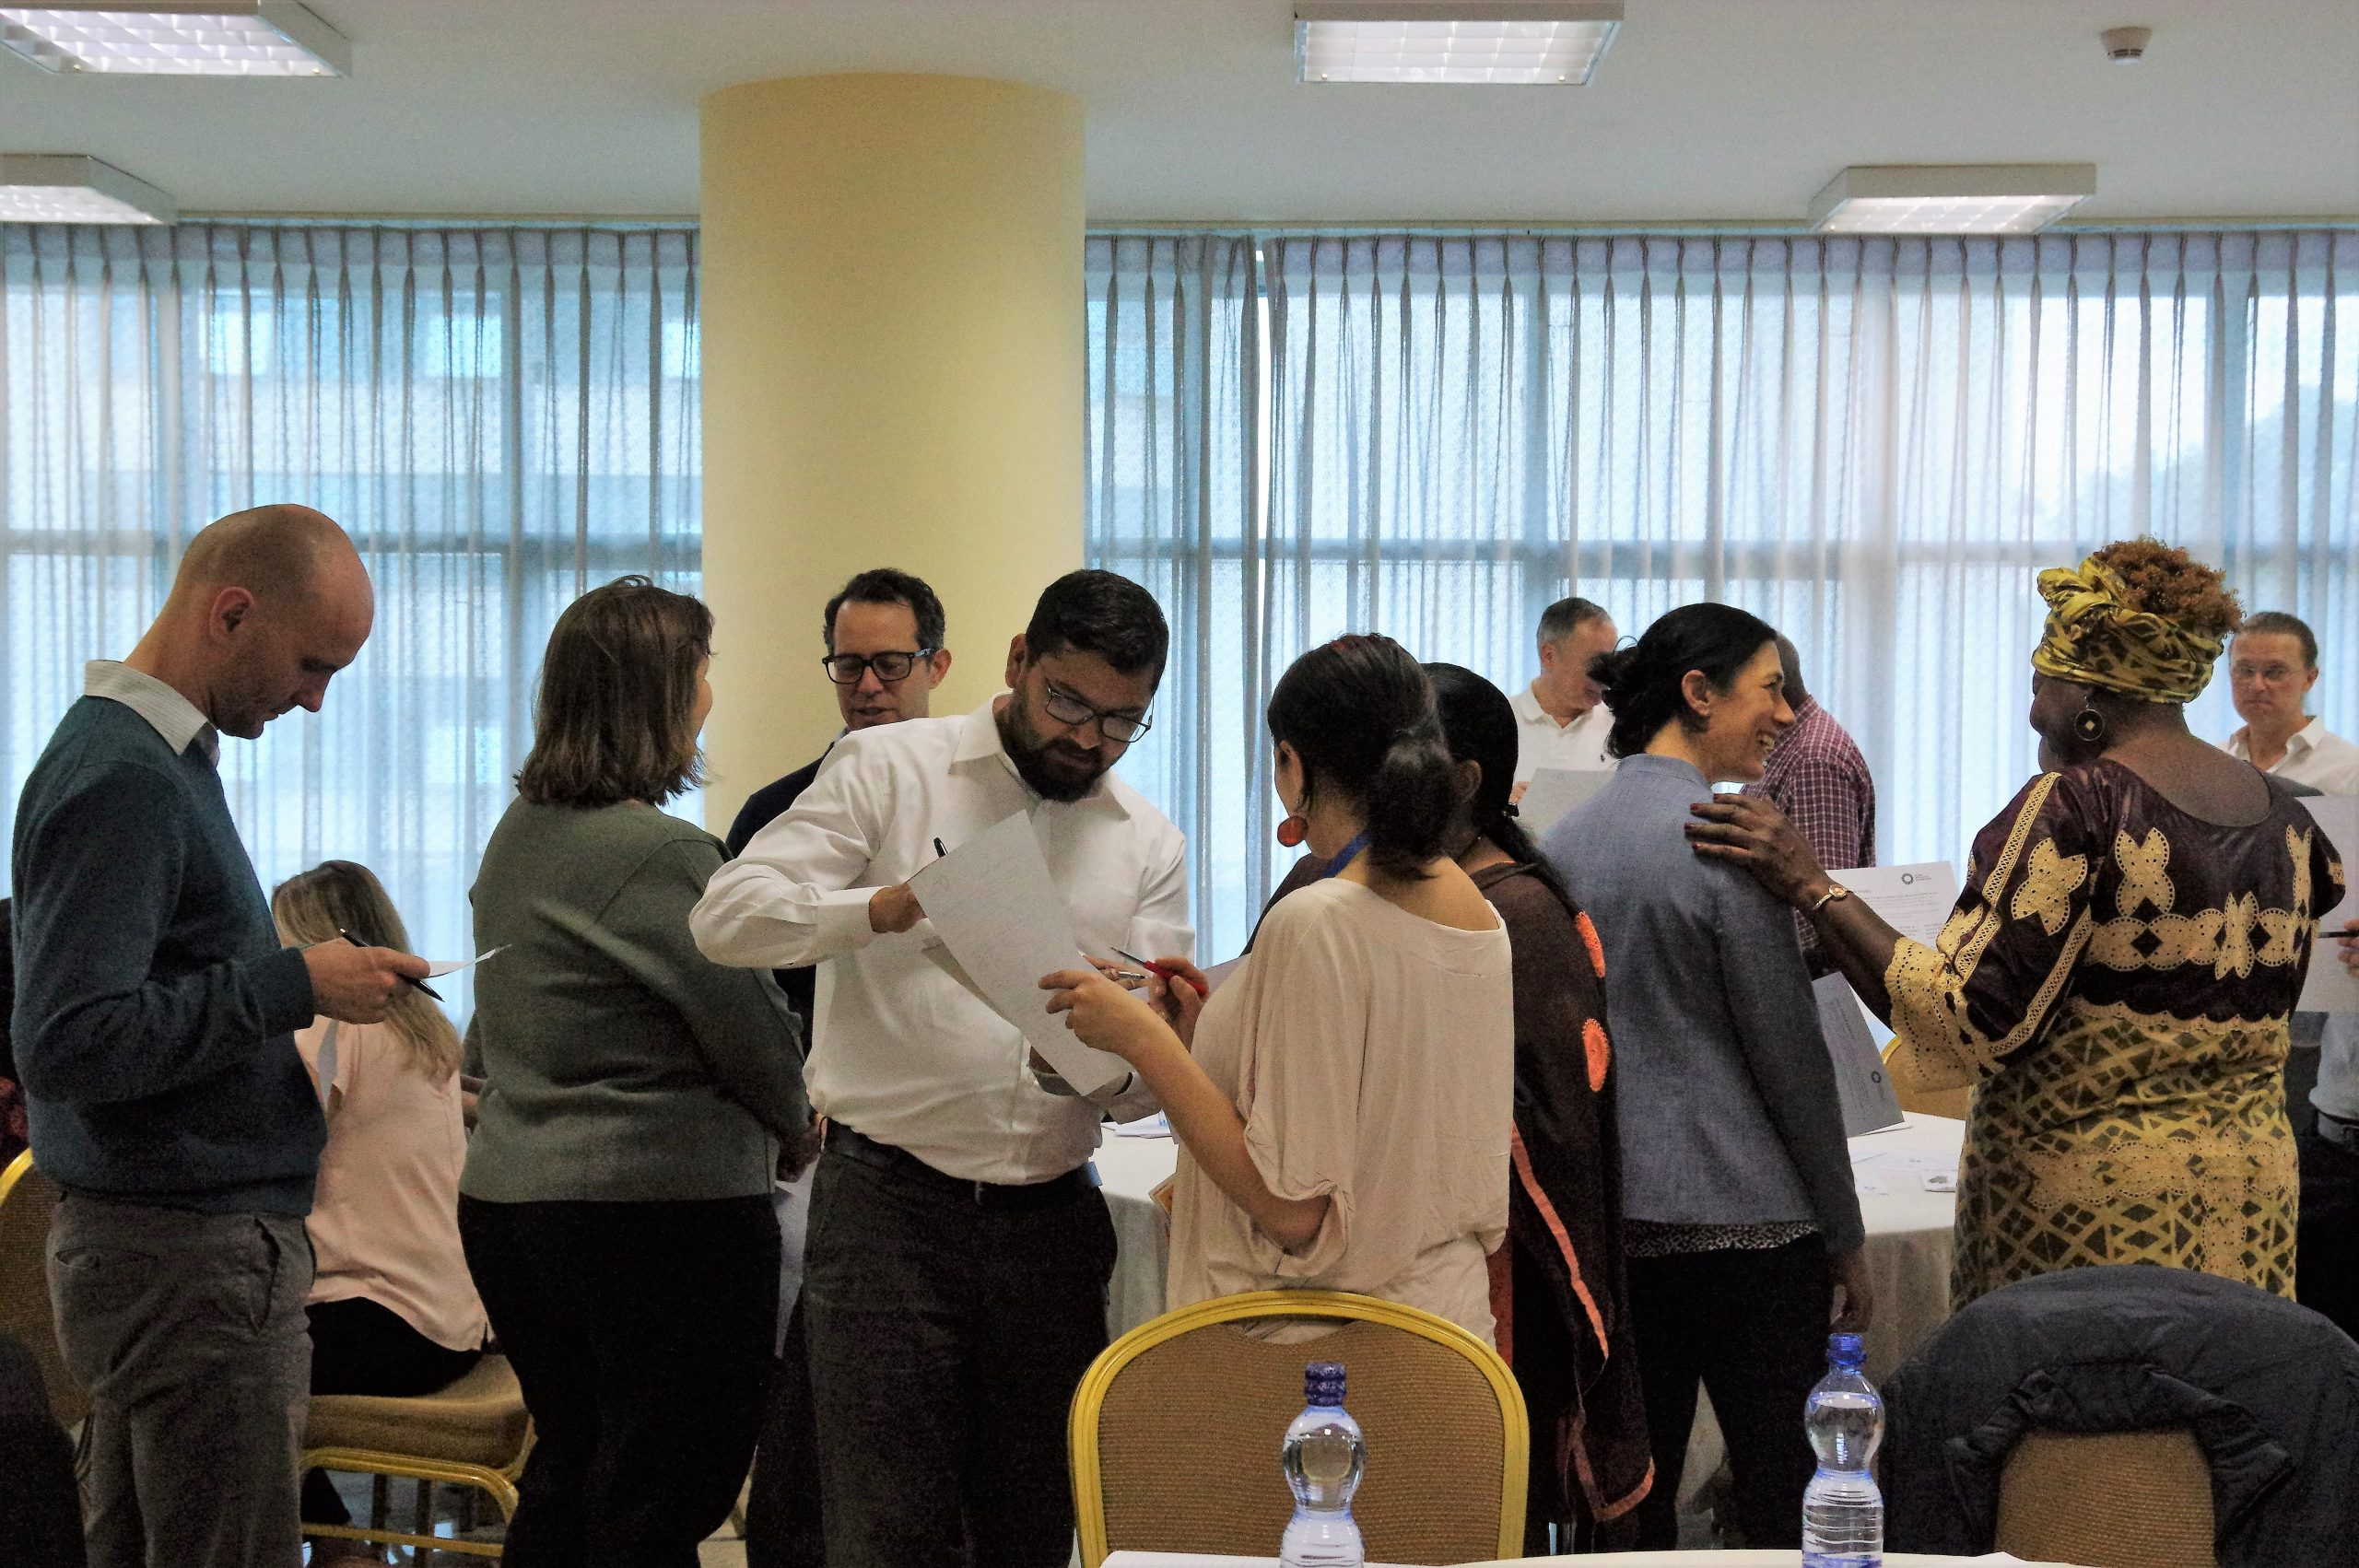 A group of people talking to each other and filling out a form together.